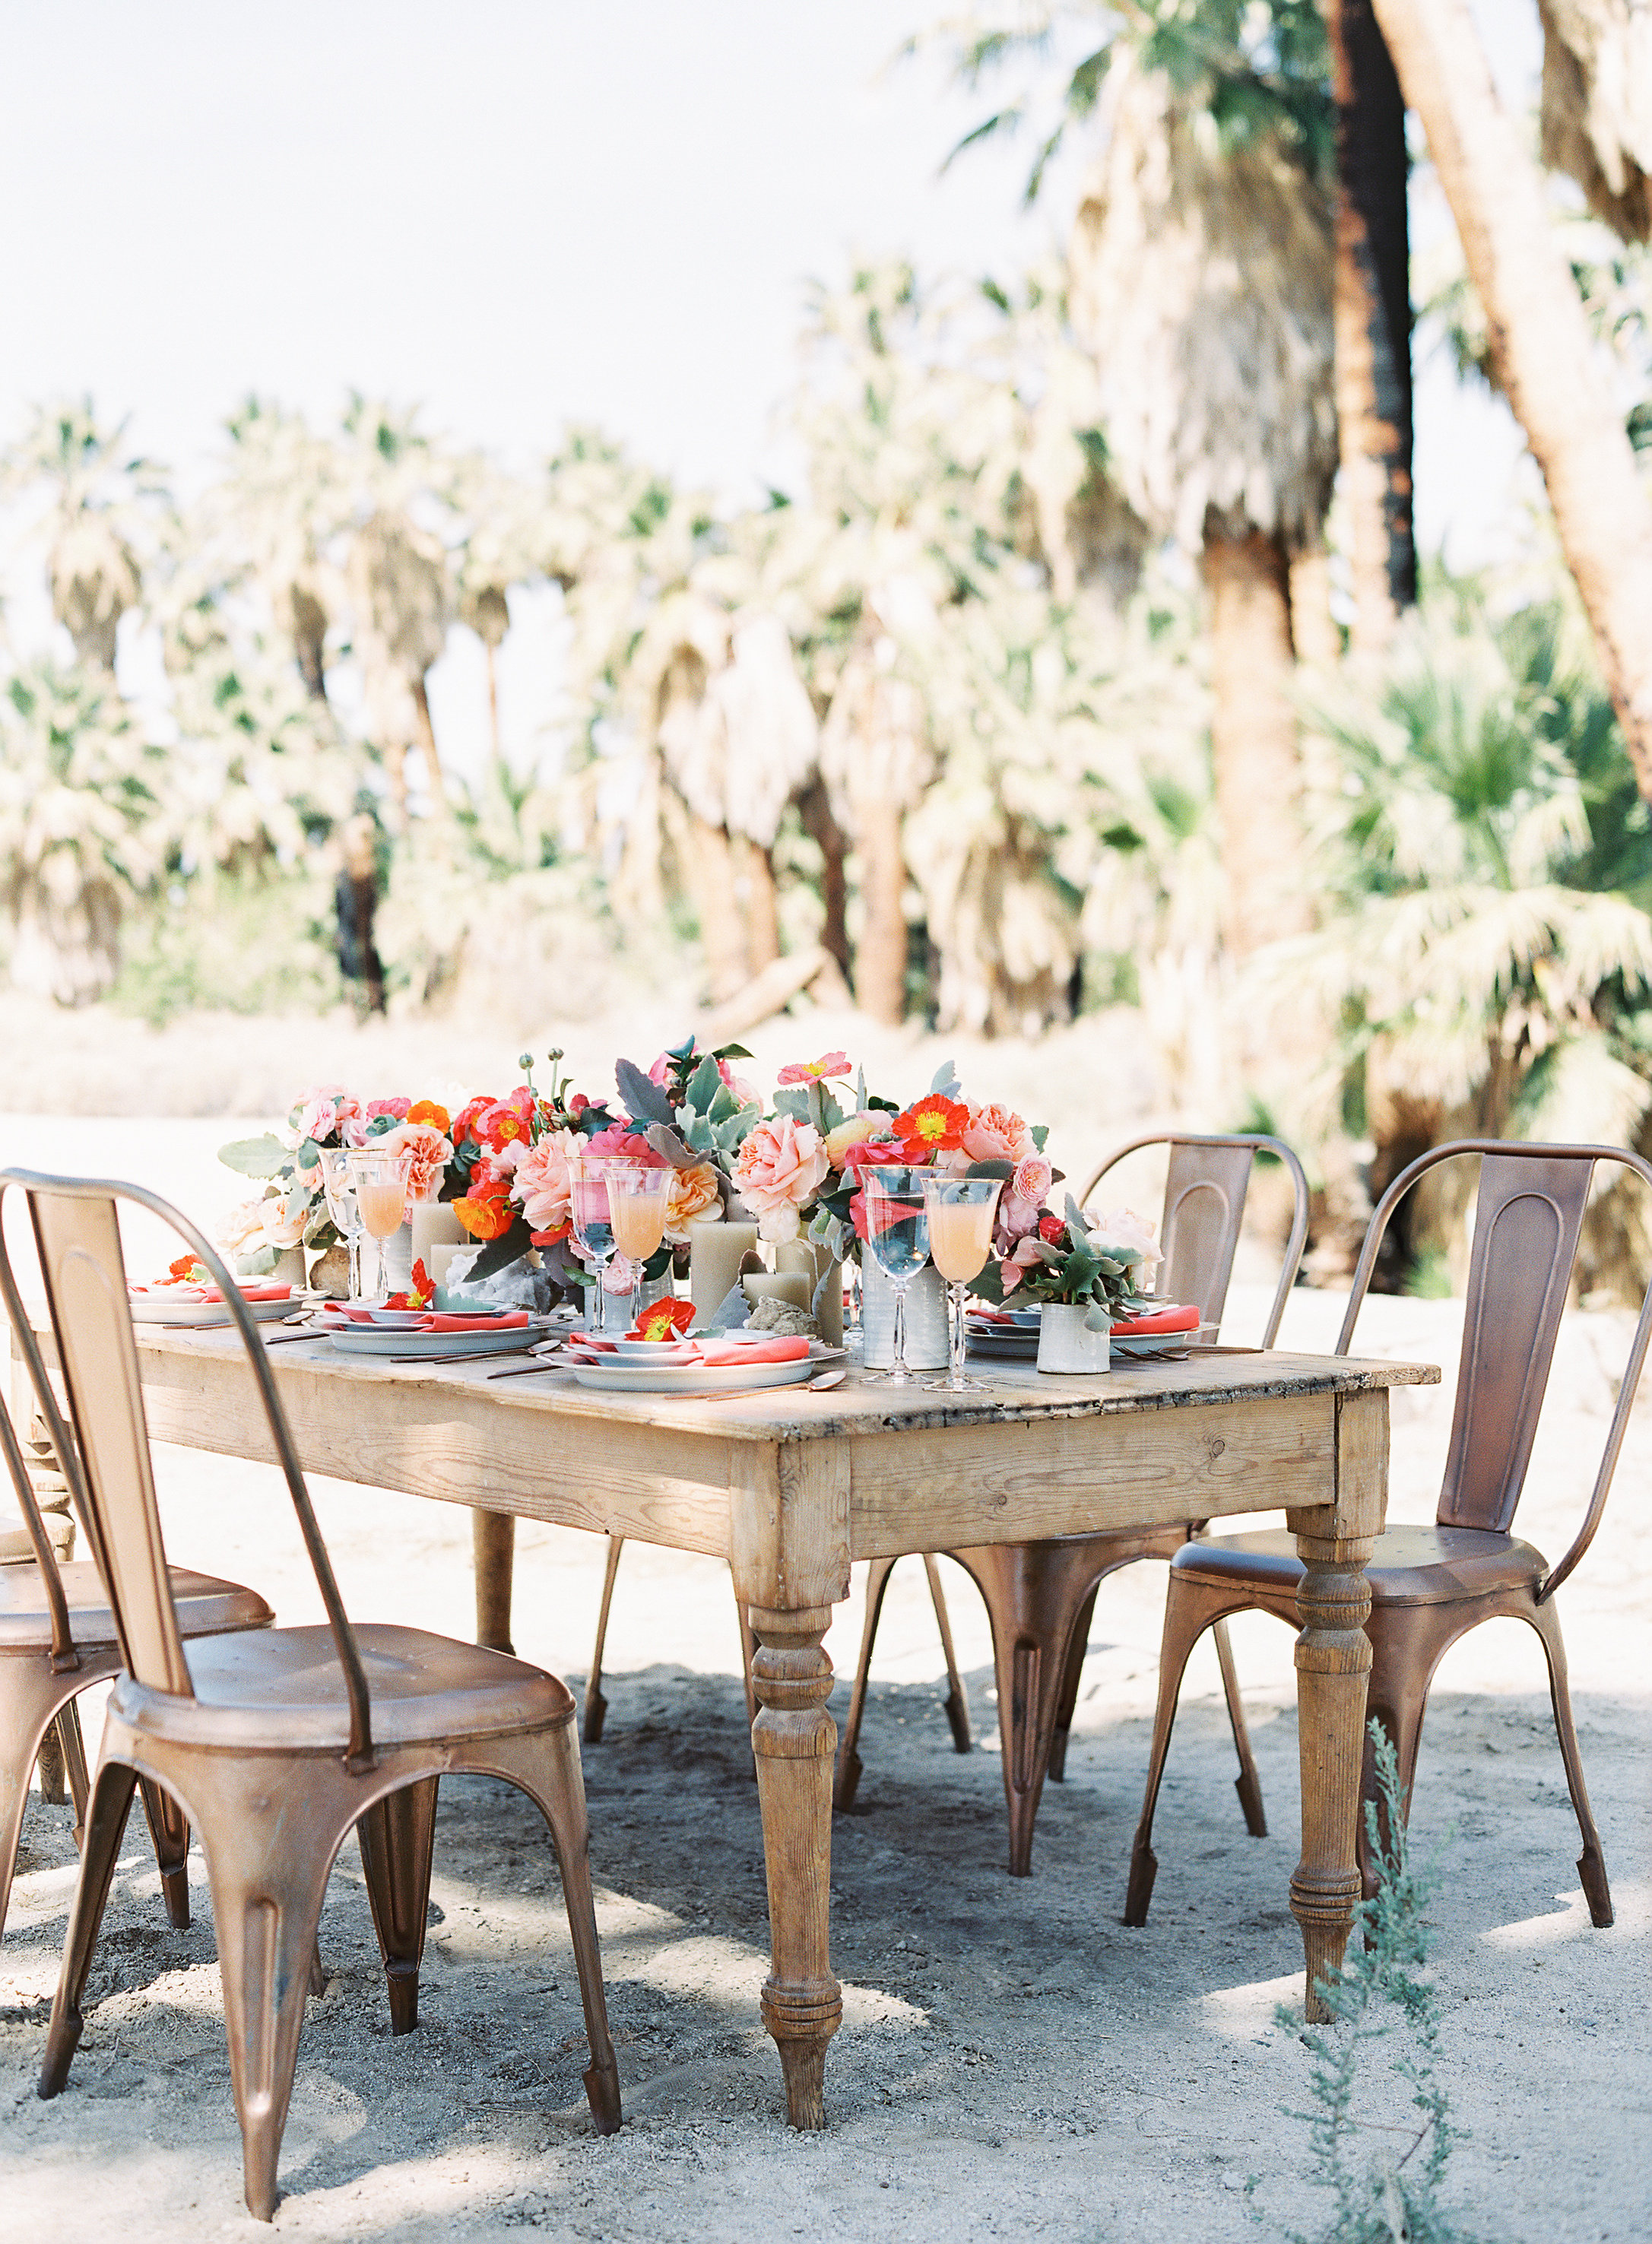 Tablescape_©_Oliver_Fly_Photography_9.jpg